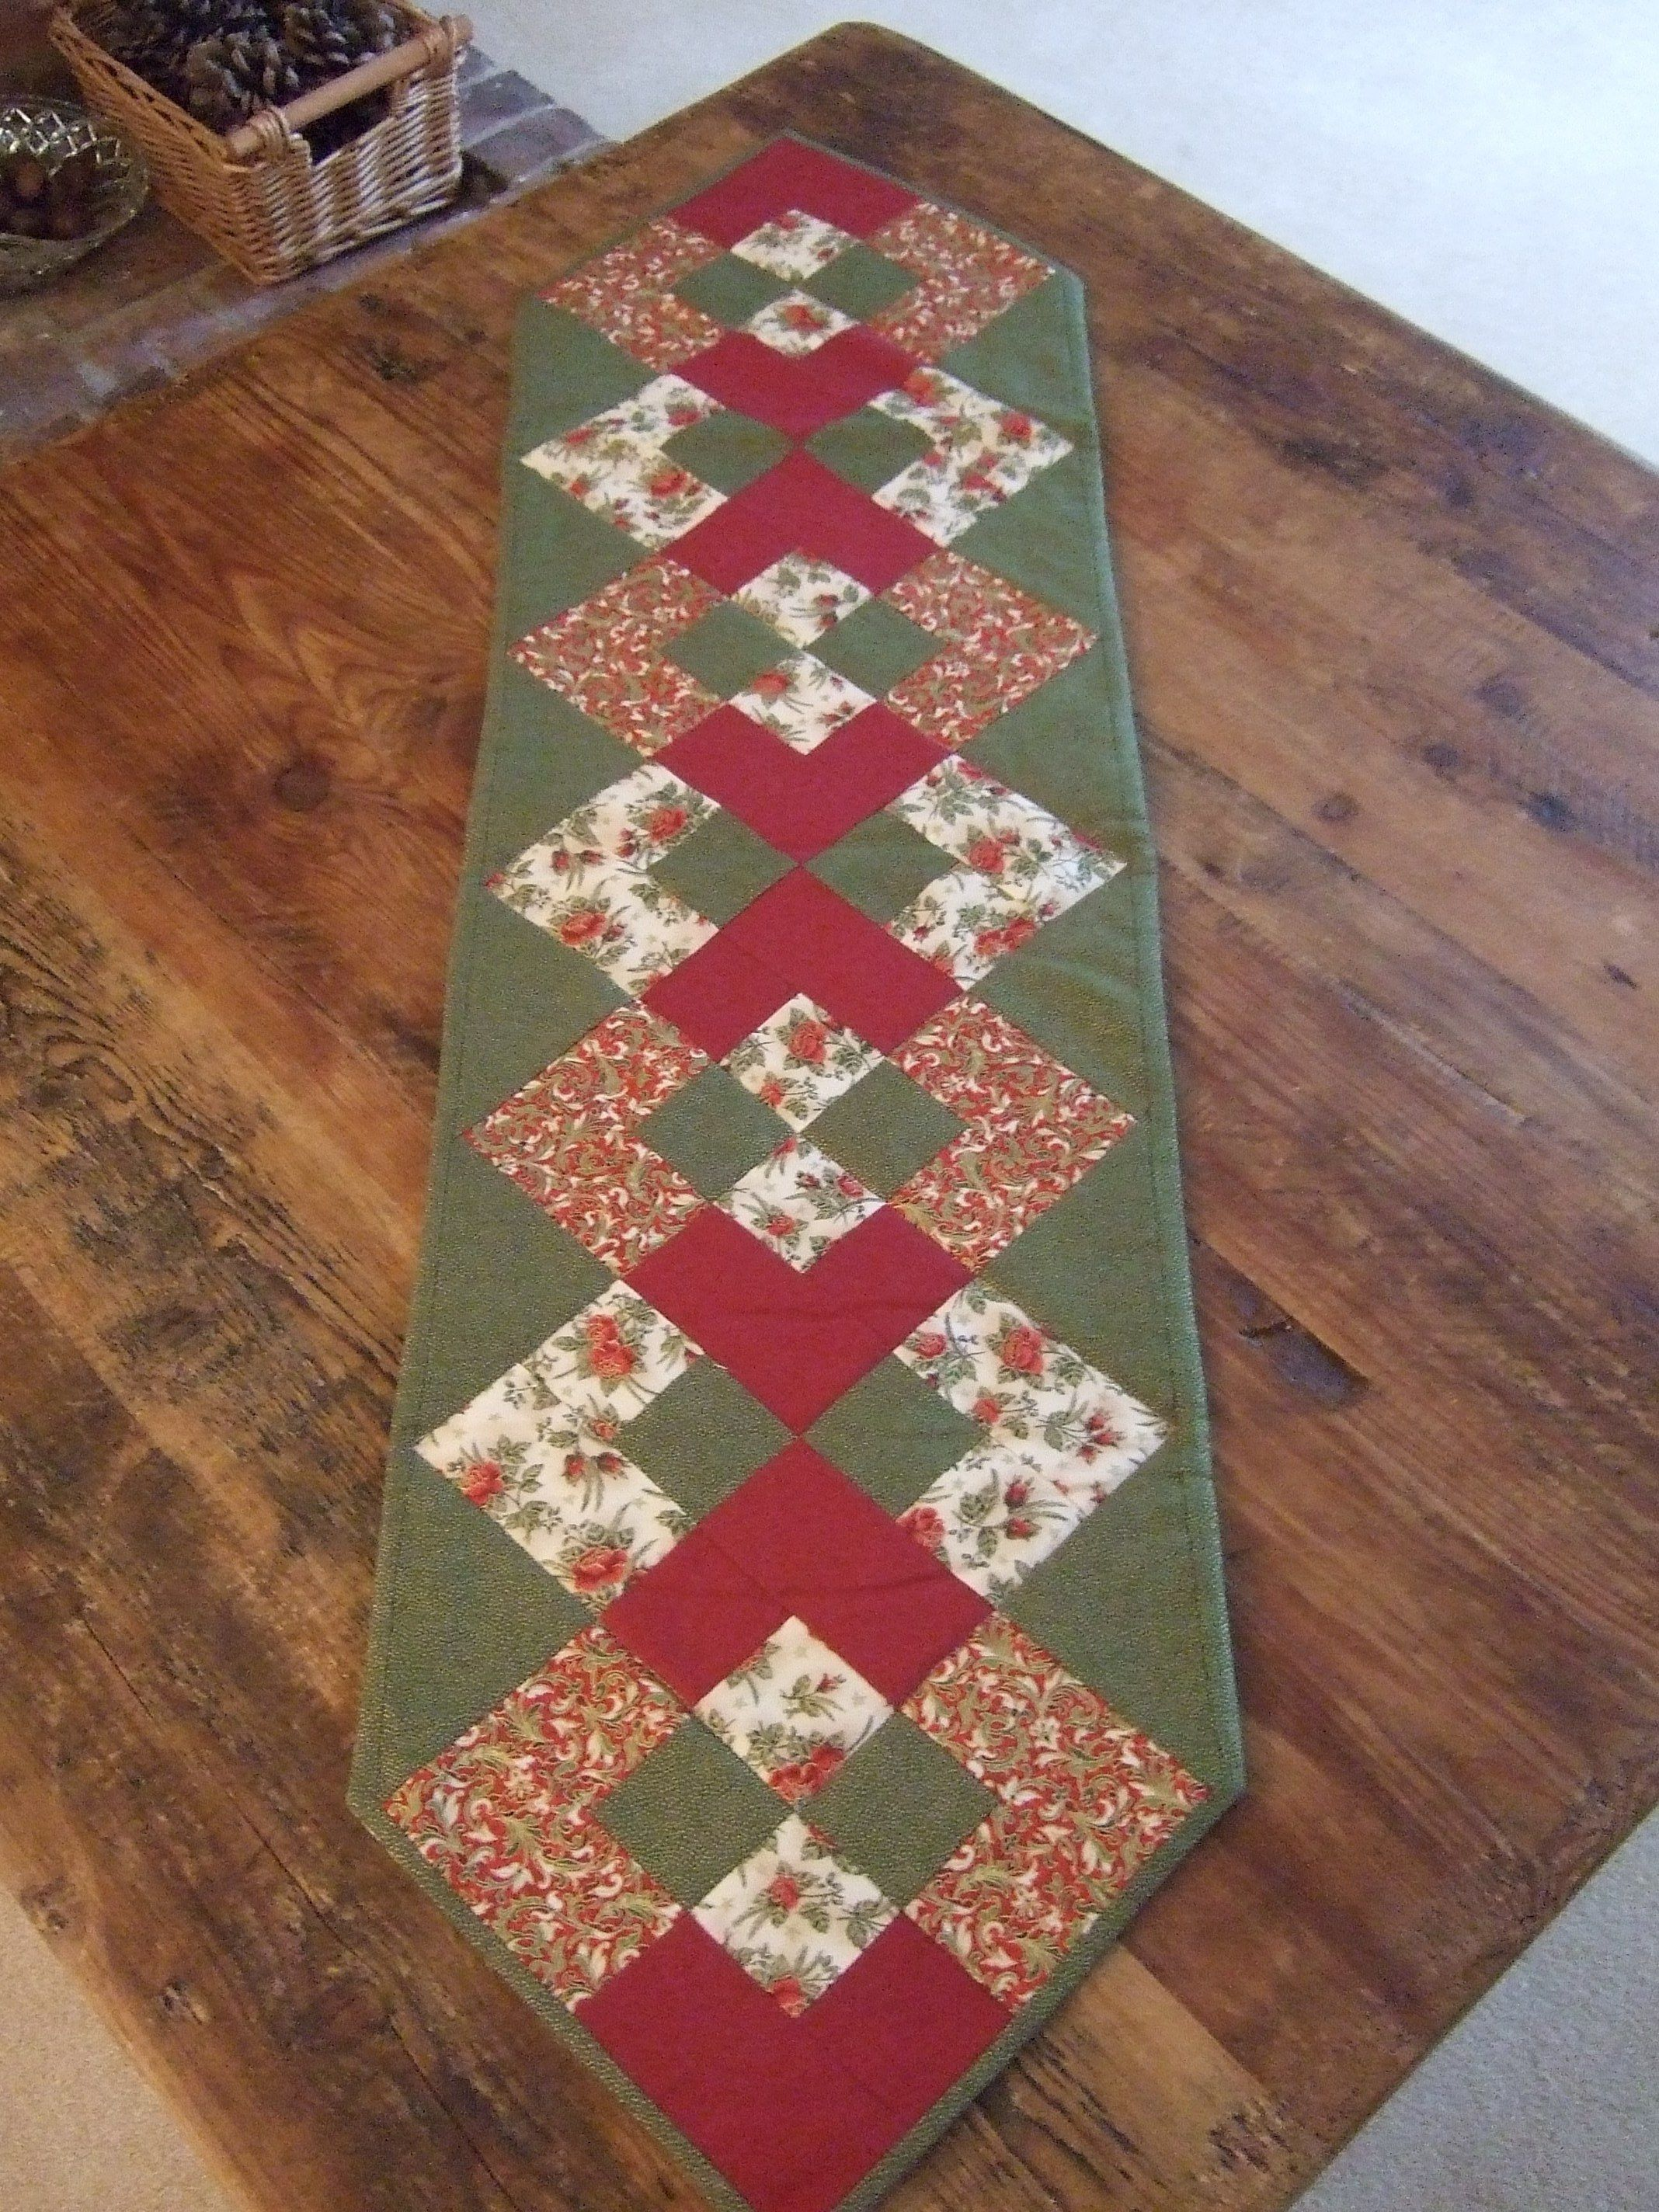 Pinterest Quilting Table Runners : Otro camino de mesa Navidad Pinterest Patchwork, Quilt table runners and Patches